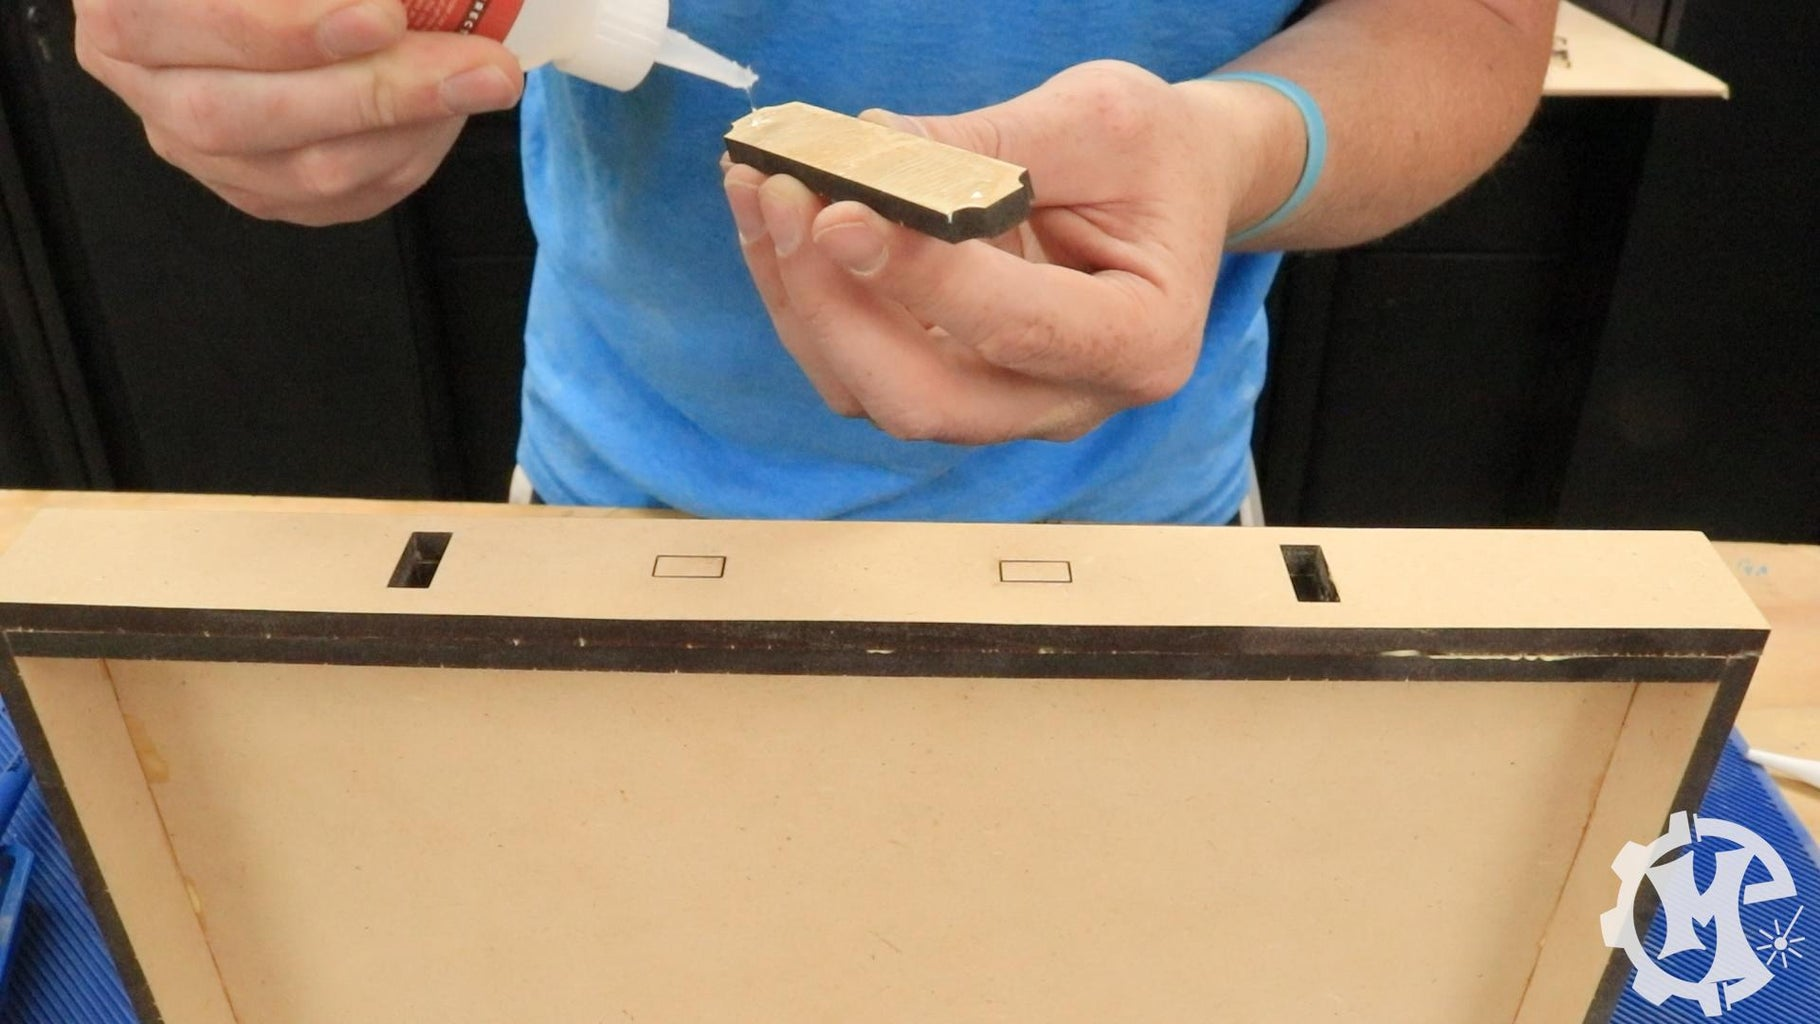 Assemble the Box - Lid Assembly